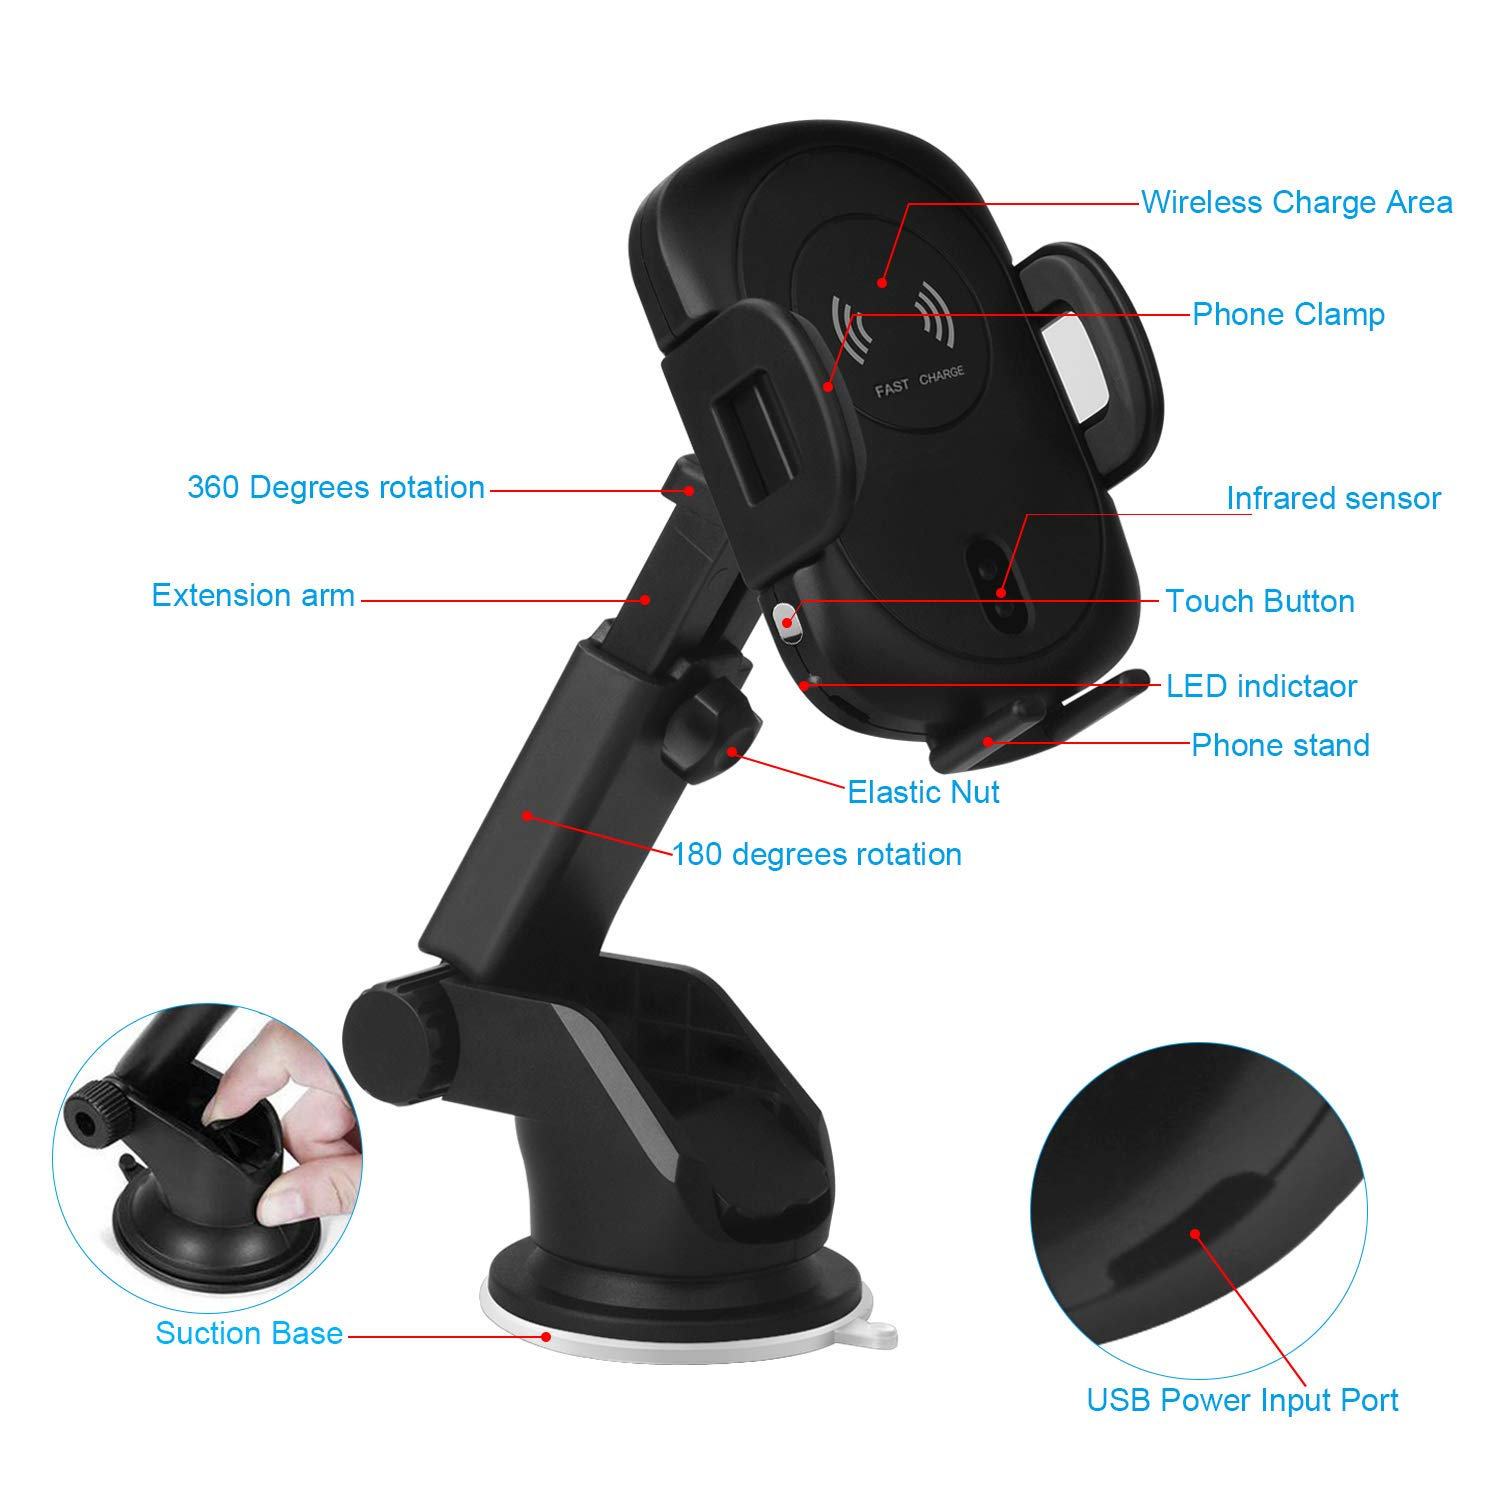 Wireless Car Charger,Sunvook Automatic Car Charger Air Vent Phone Holder Mount Stand Car Charger Automatic Infrared Sensing Holder 10W Fast Wireless Car Charger for Samsung Galaxy S8 S8 Plus S7 S7 Edge Note 8/5 Standard Charge for iPhone X/